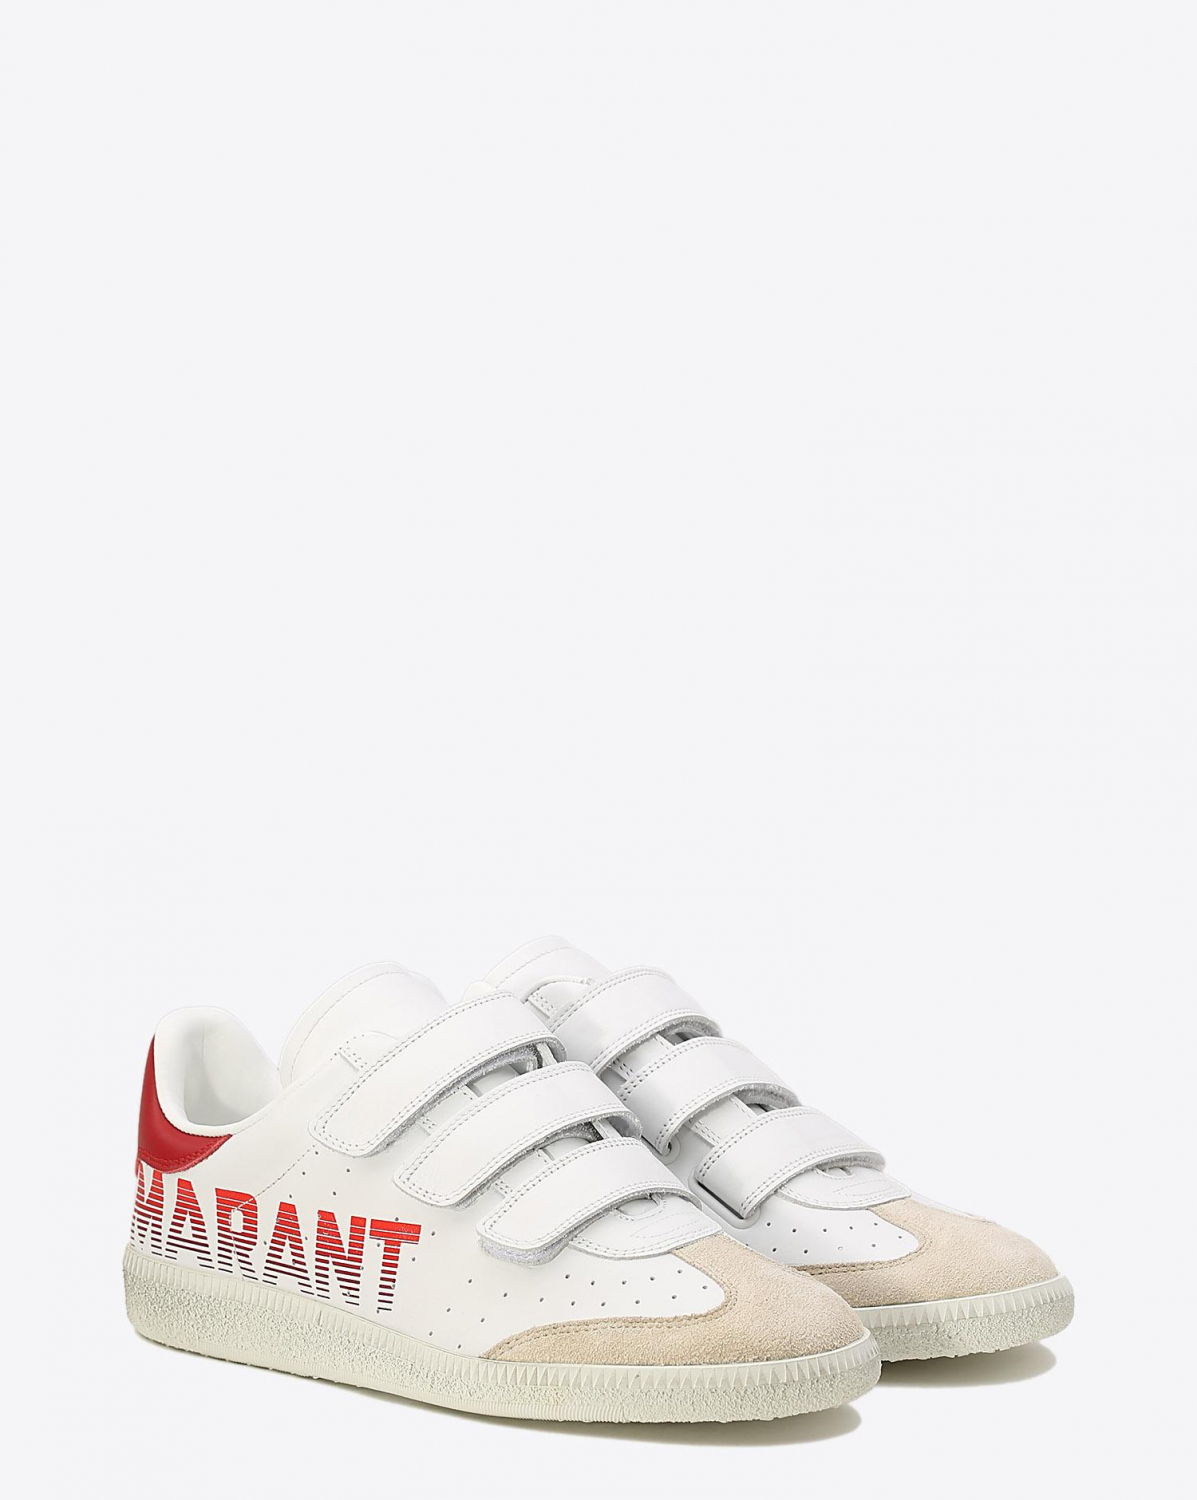 Isabel Marant Chaussures Sneakers BETH -